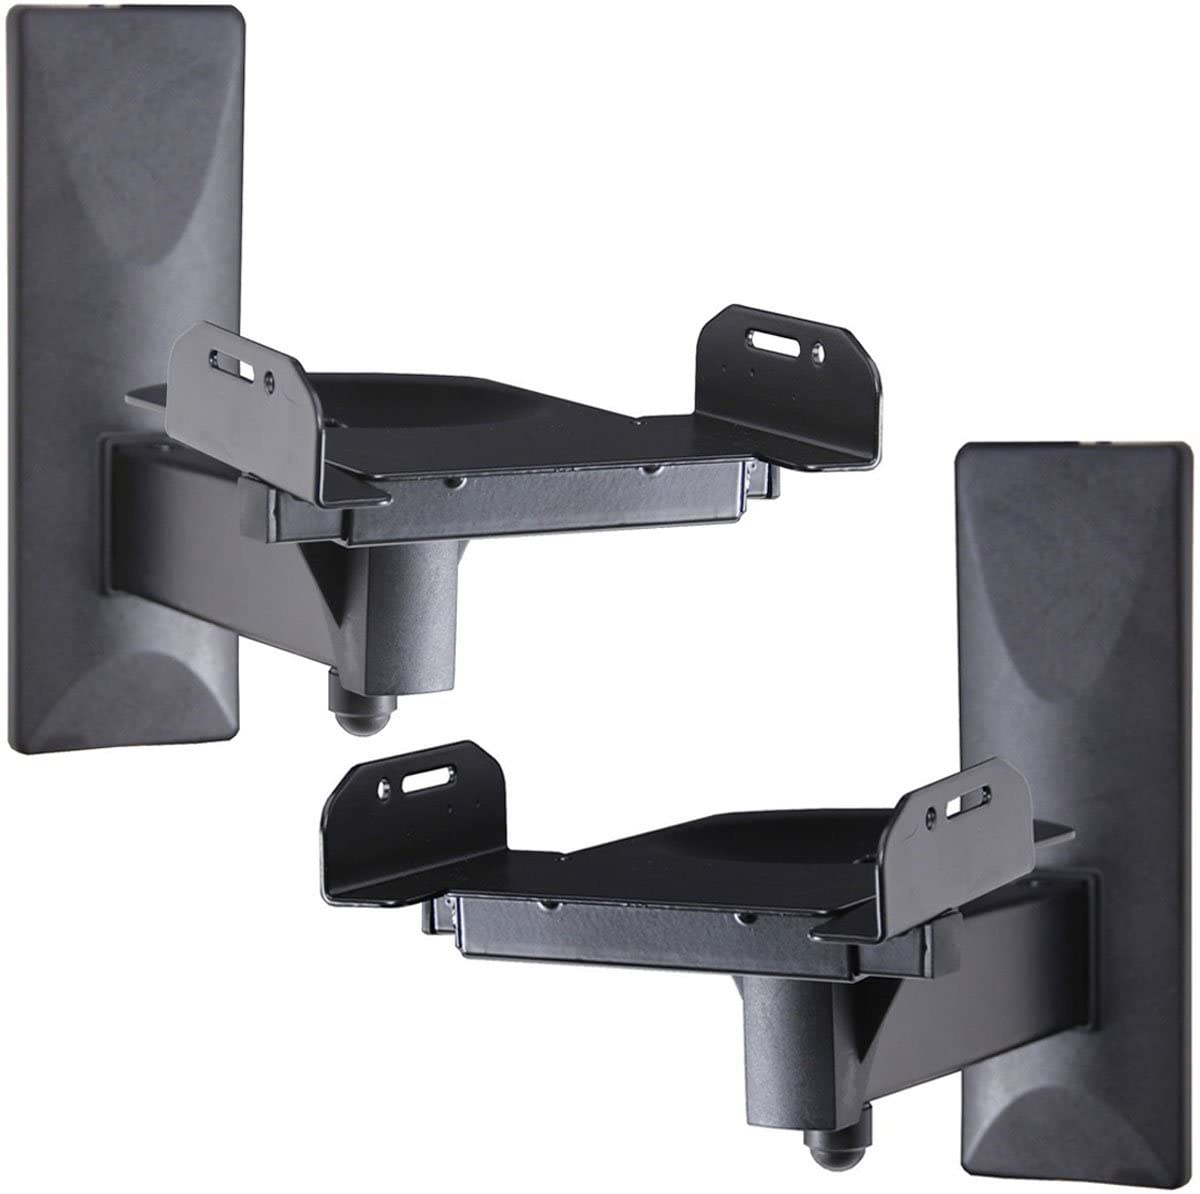 VideoSecu One Pair of Side Clamping Bookshelf Speaker Mounting Bracket